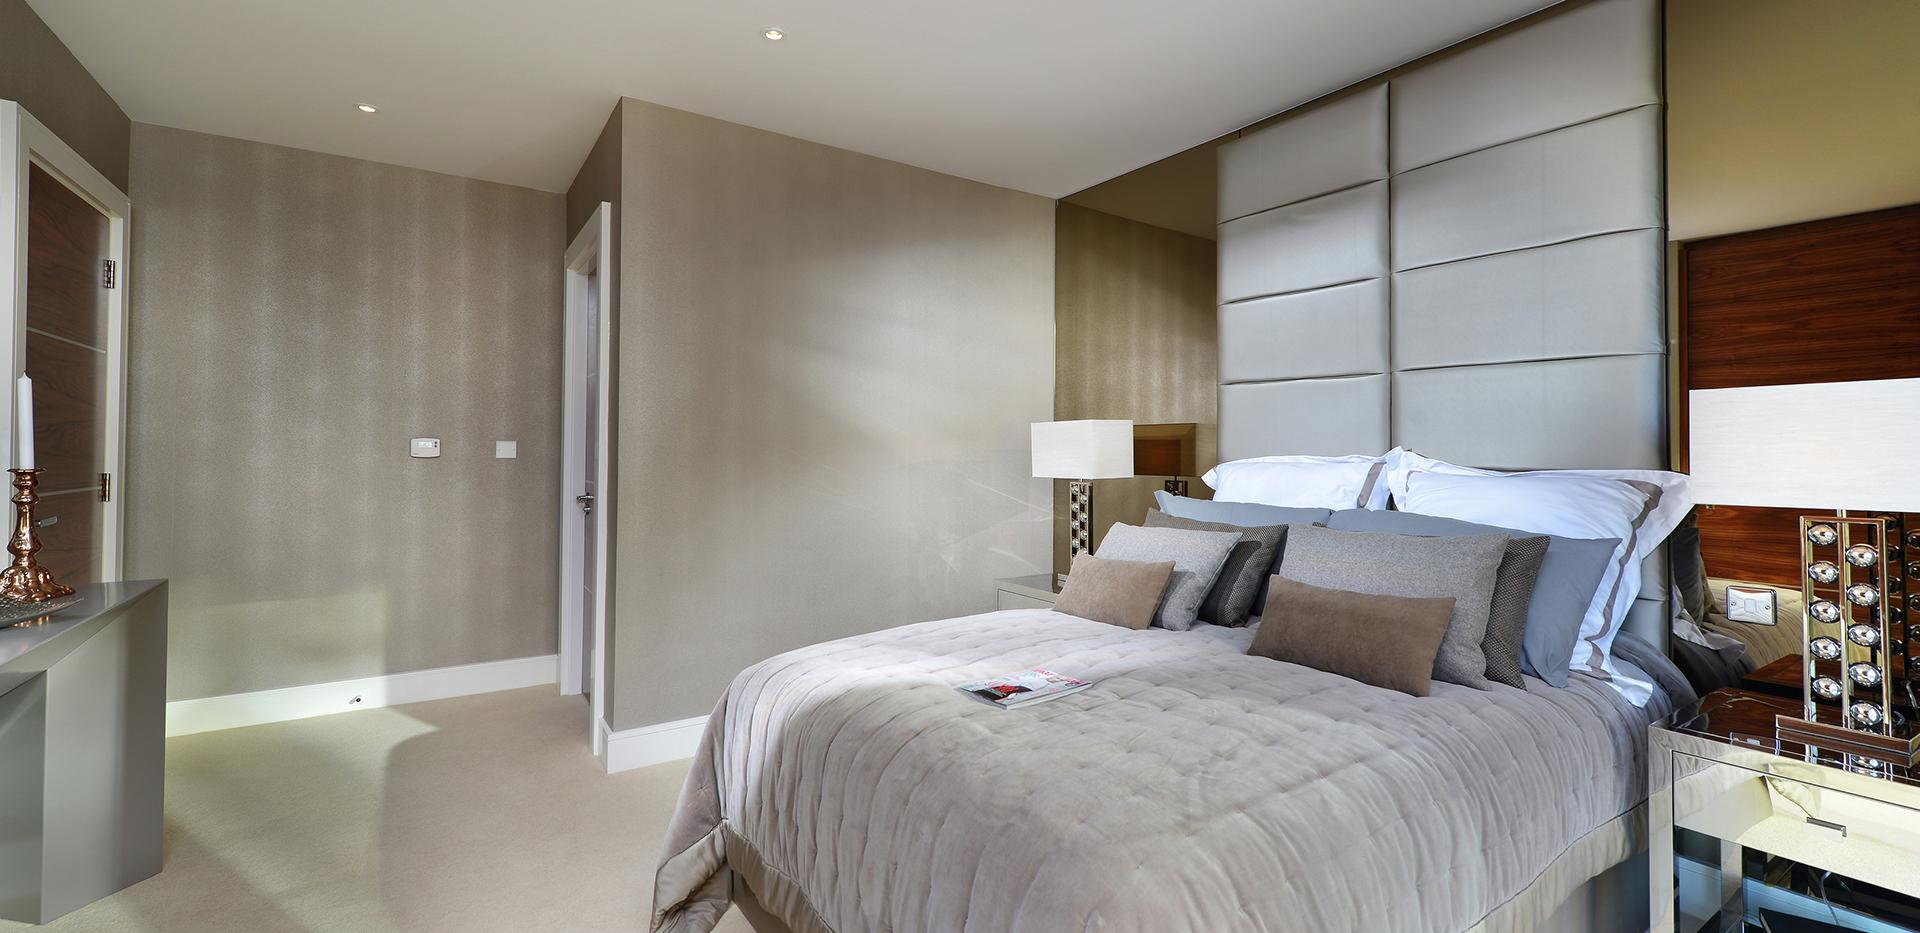 Berkeley Homes, Kidbrooke Village, Blackheath Quarter, Wallace Apartments, Bedroom Day